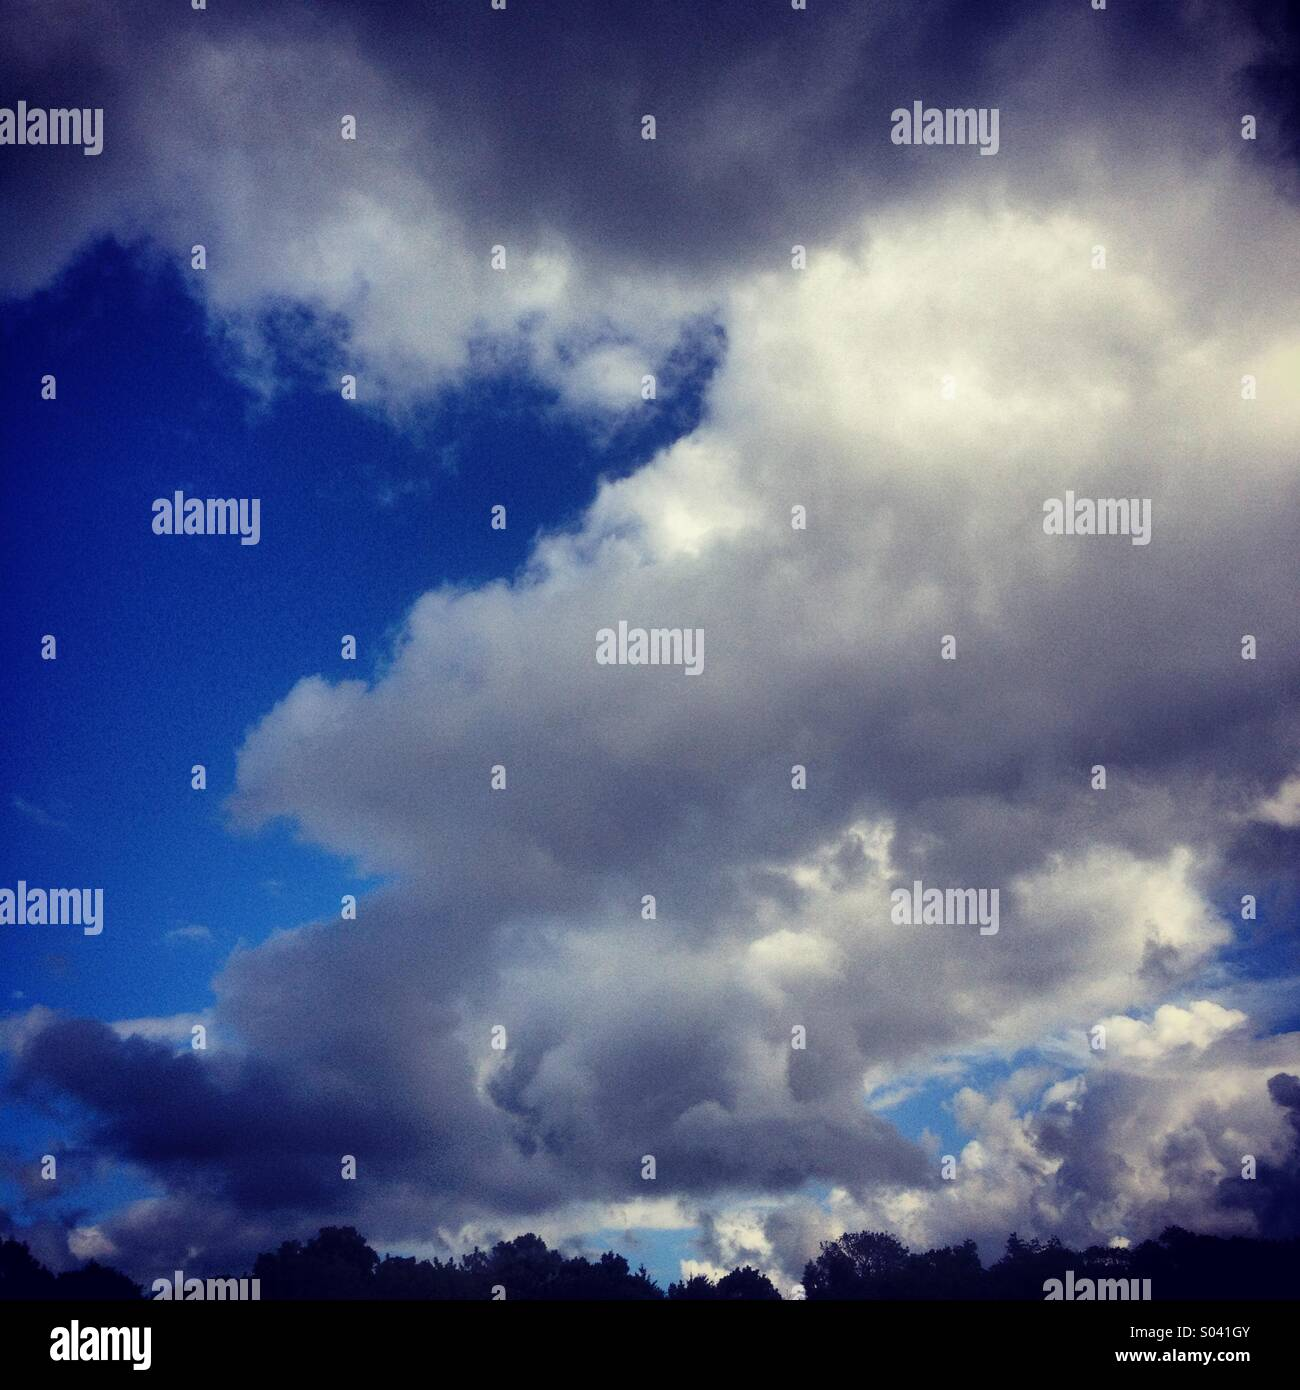 Storm clouds over Godalming in Surrey, UK. - Stock Image